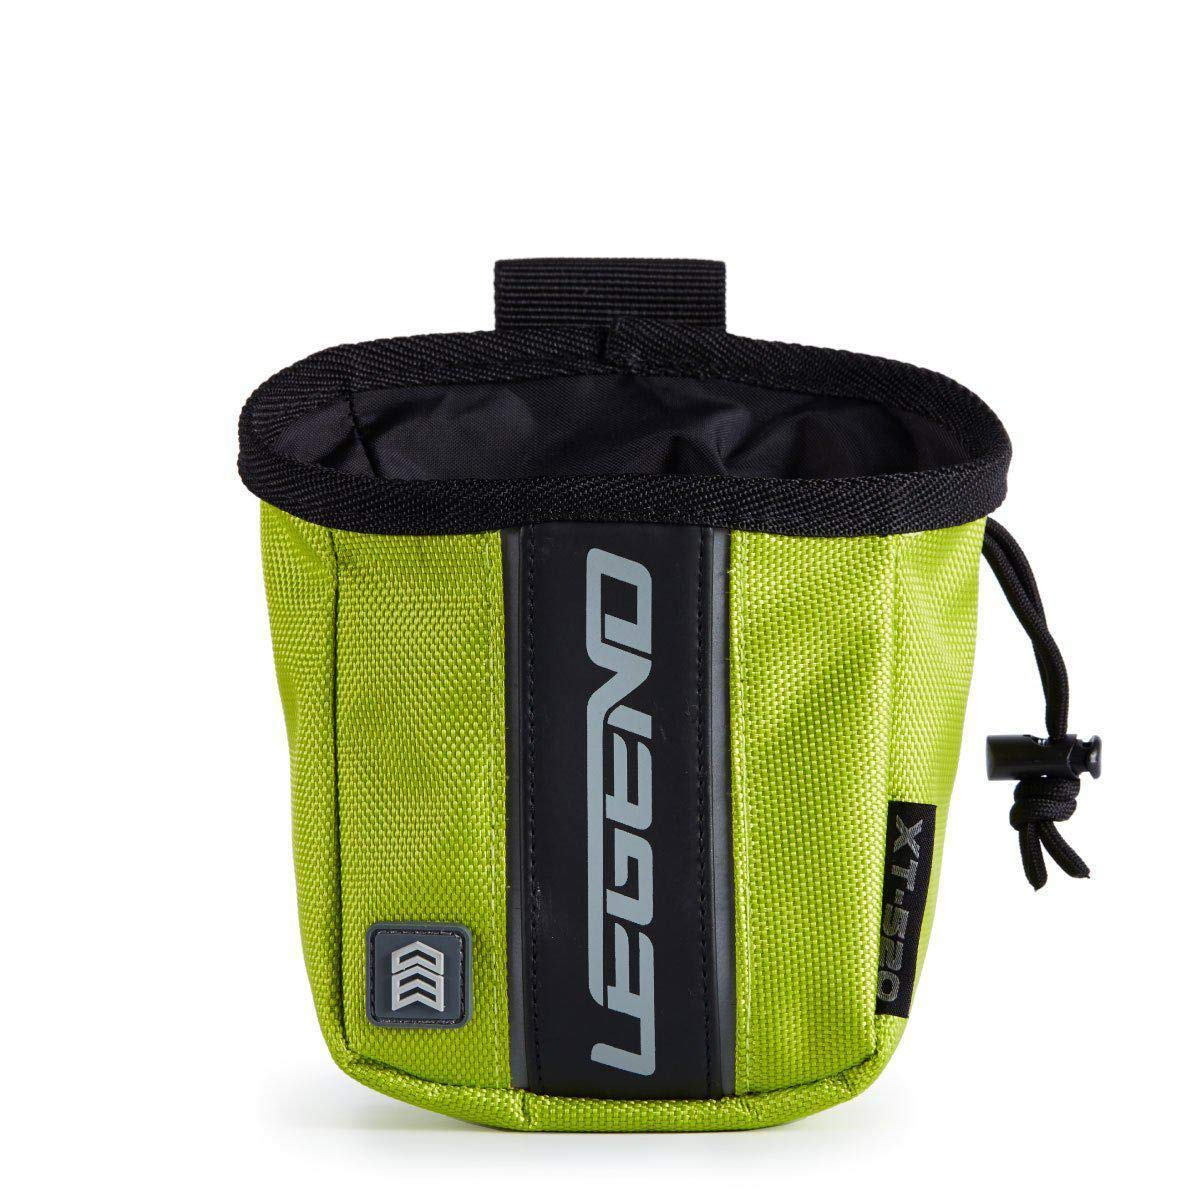 Legend Archery Release Aids Pouch Bag with Belt Loop Draw String and Zipped Pocket XT520 (Green) by Legend